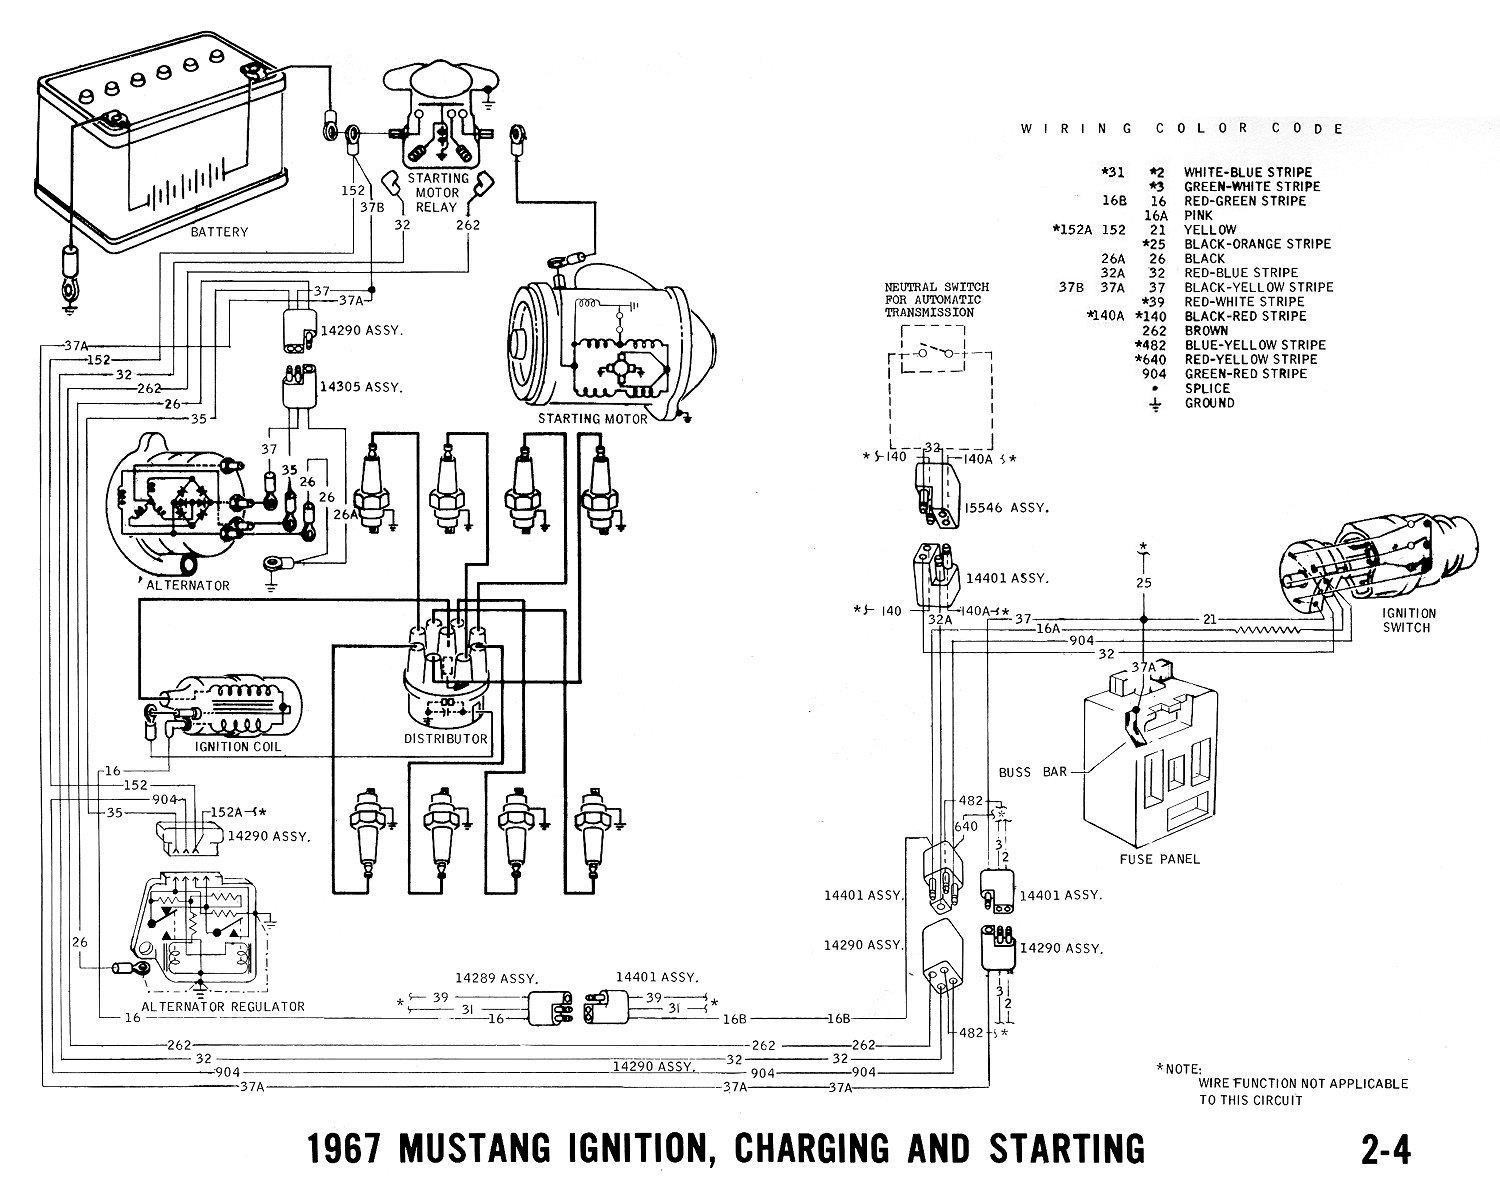 1966 ford ignition switch wiring diagram 9 1 pluspatrunoua de \u2022ford ignition switch wiring diagram online wiring diagram rh 3 code3e co 1966 ford f100 ignition switch wiring diagram 1970 ford ignition switch diagram